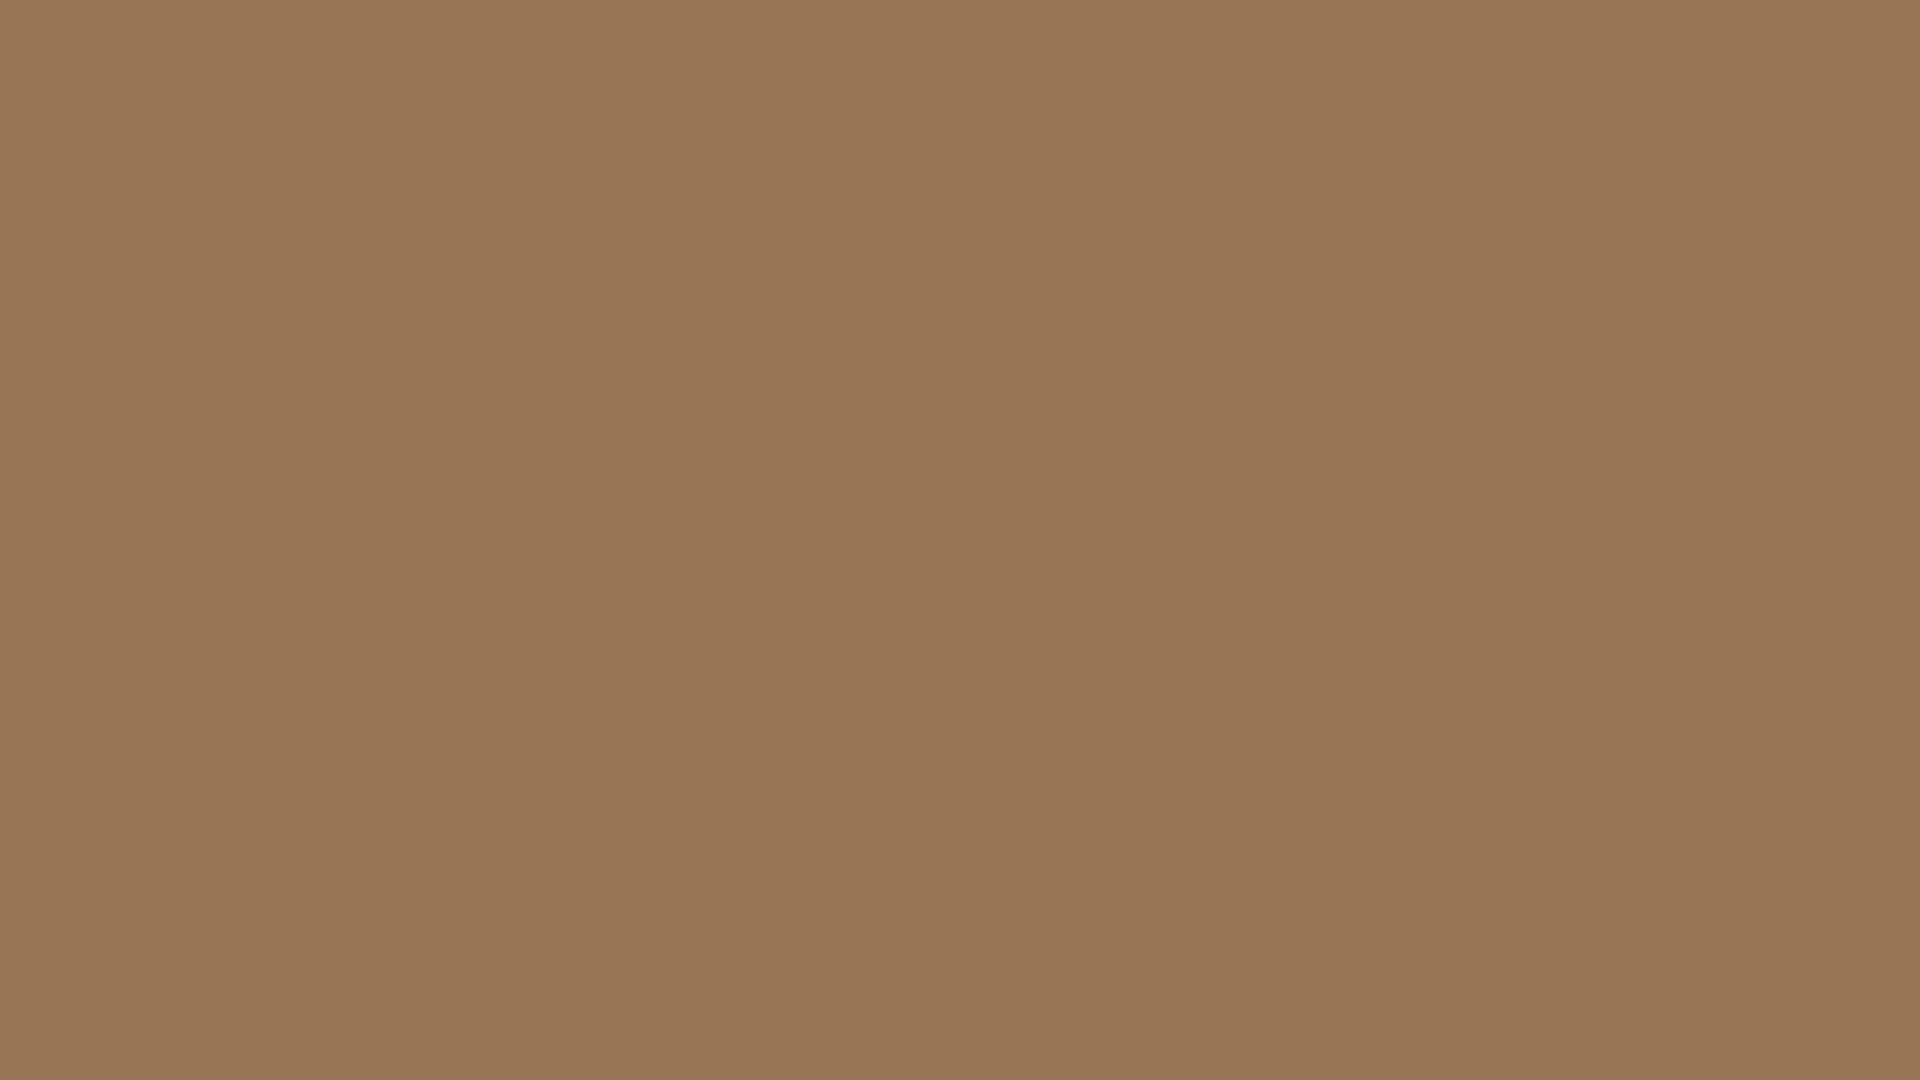 1920x1080 Pale Brown Solid Color Background